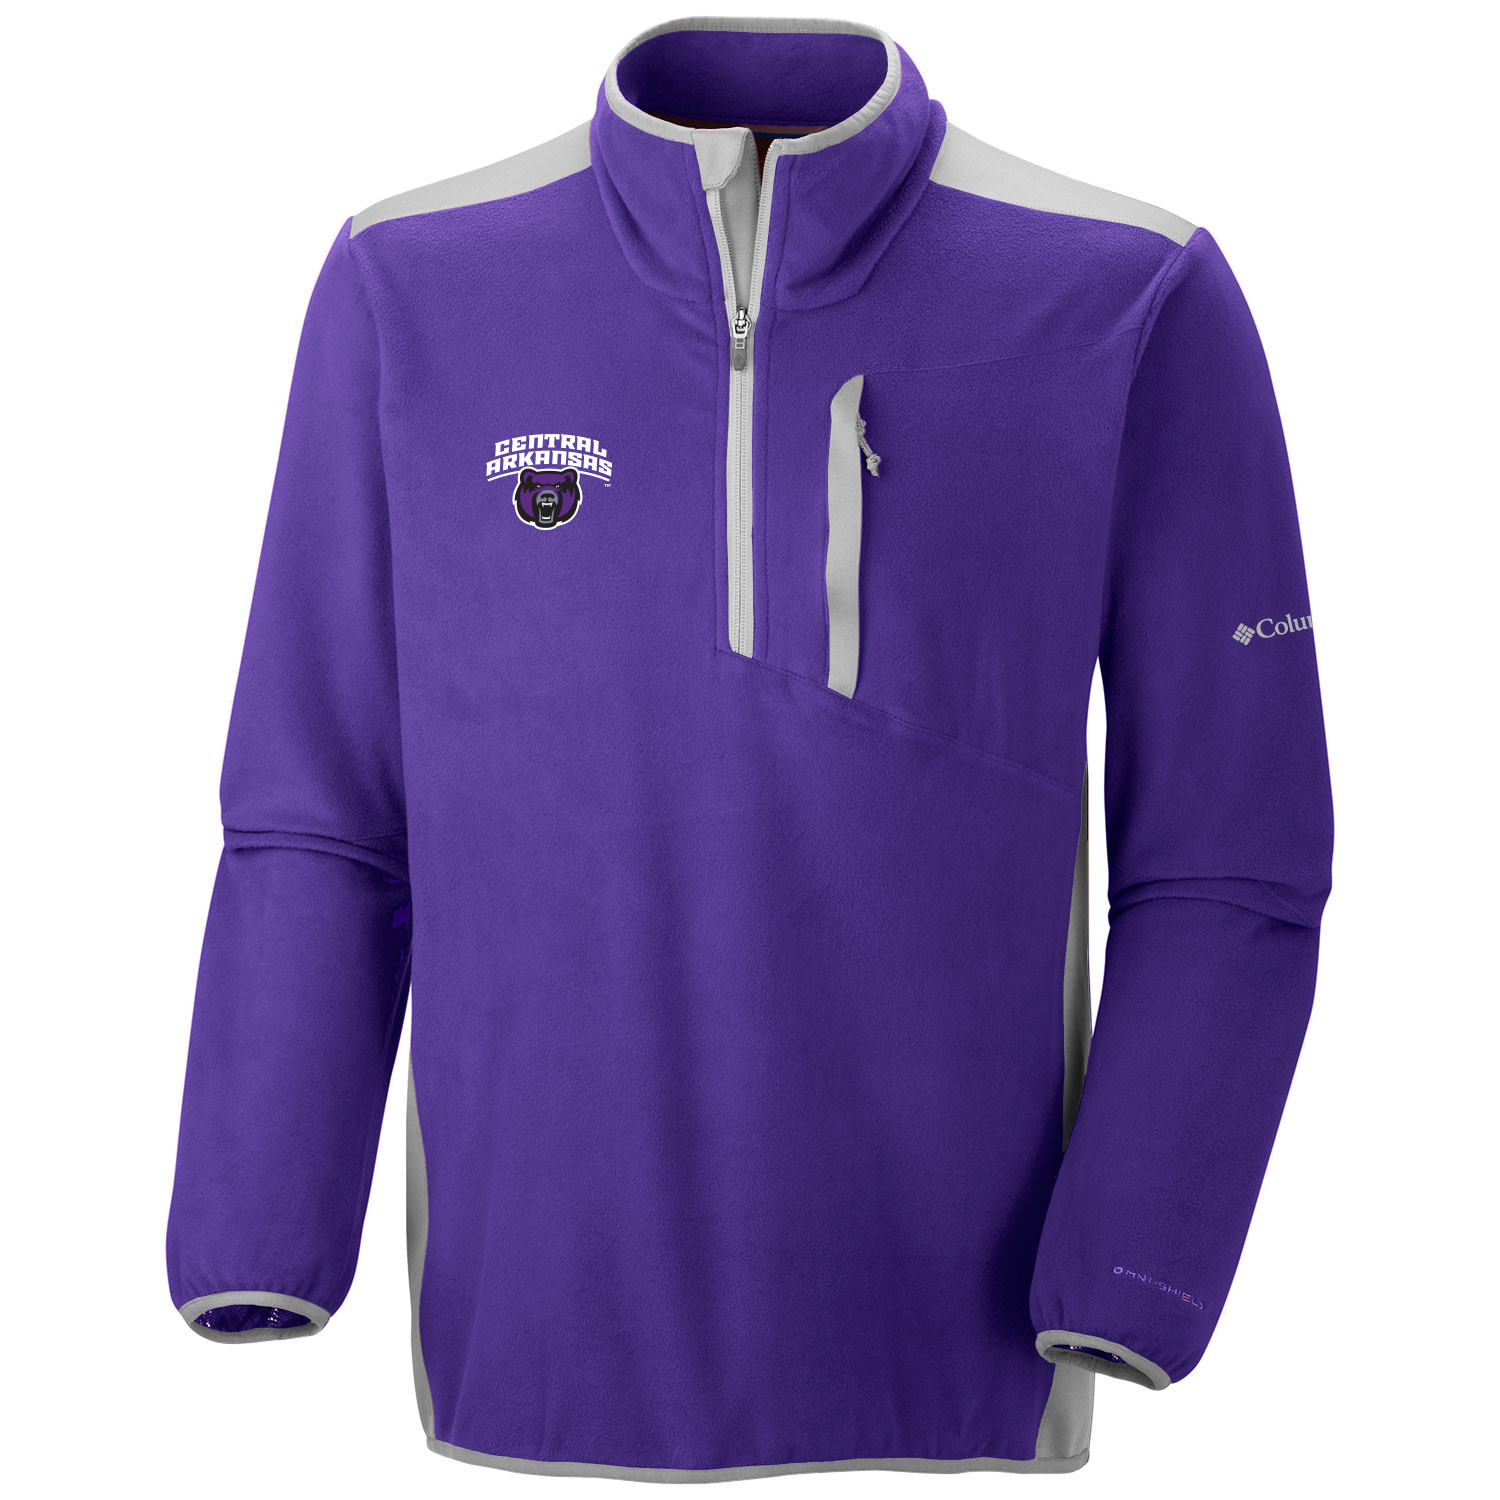 Men's Crosslite II 1/2 Zip